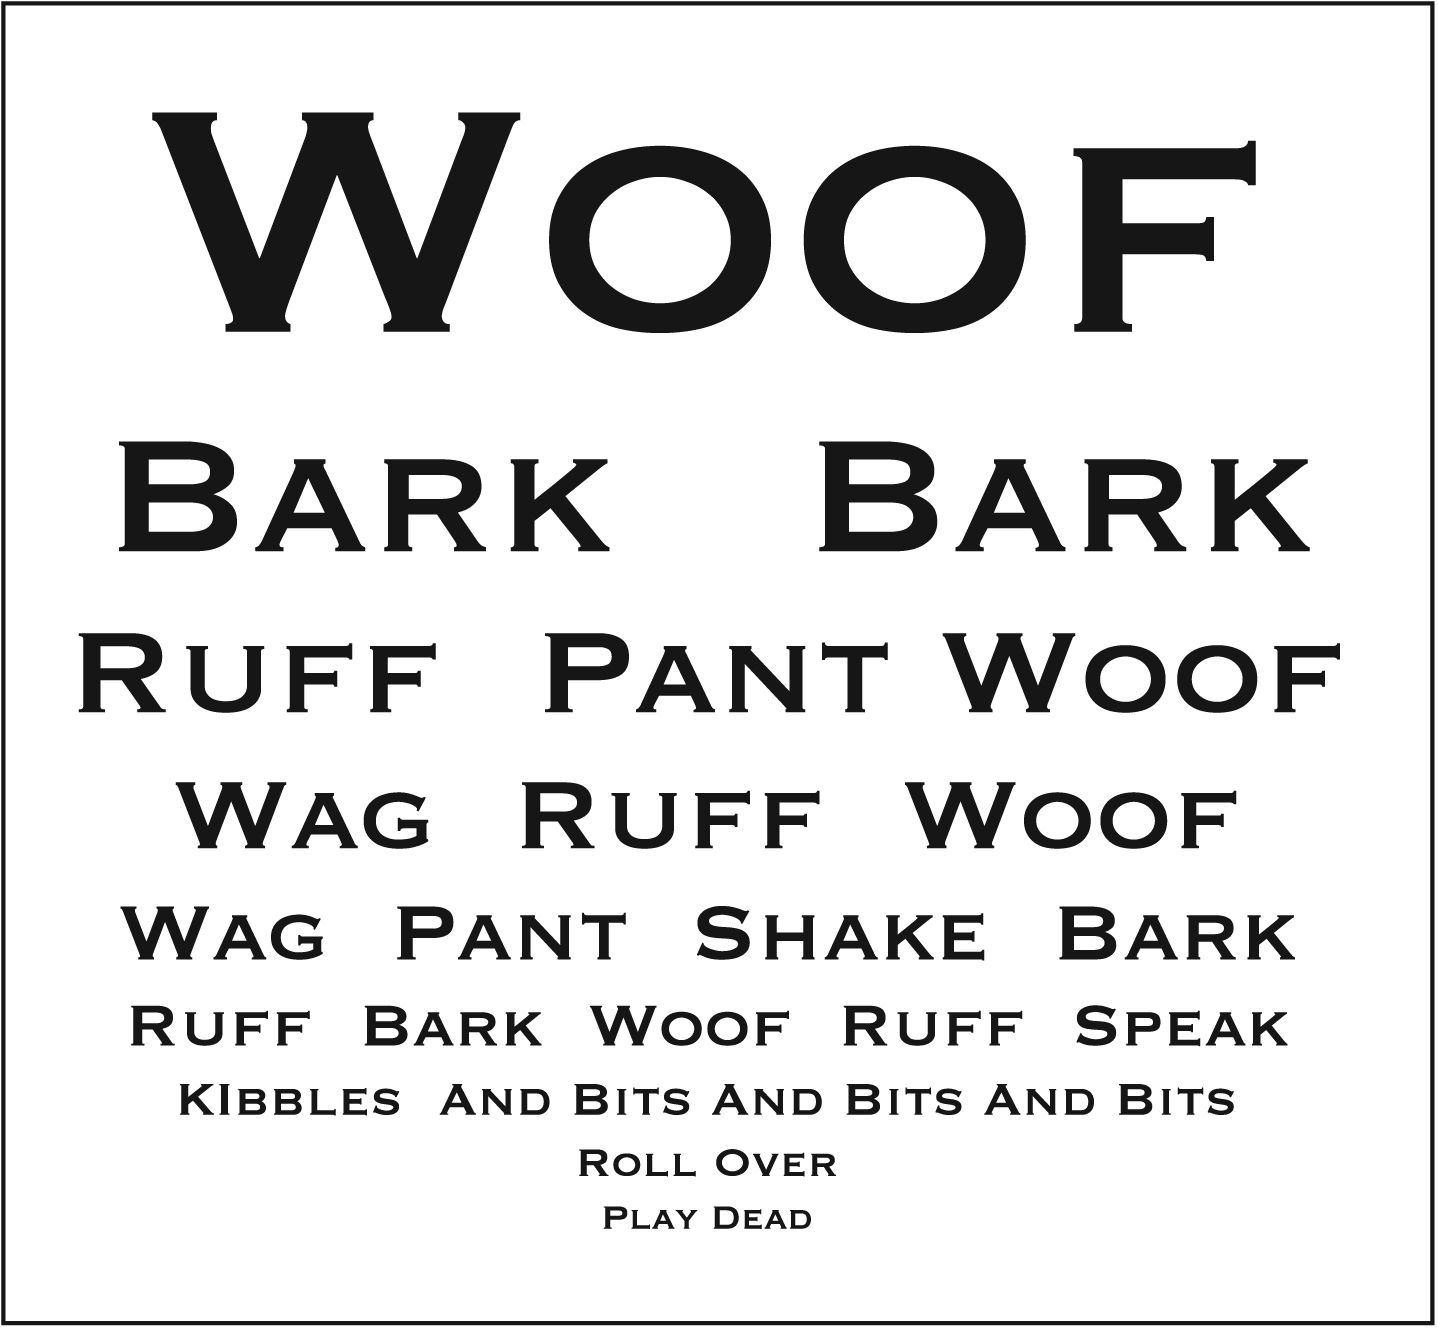 Eye chart for dogs eye charts pinterest chart and dog eye chart for dogs geenschuldenfo Image collections